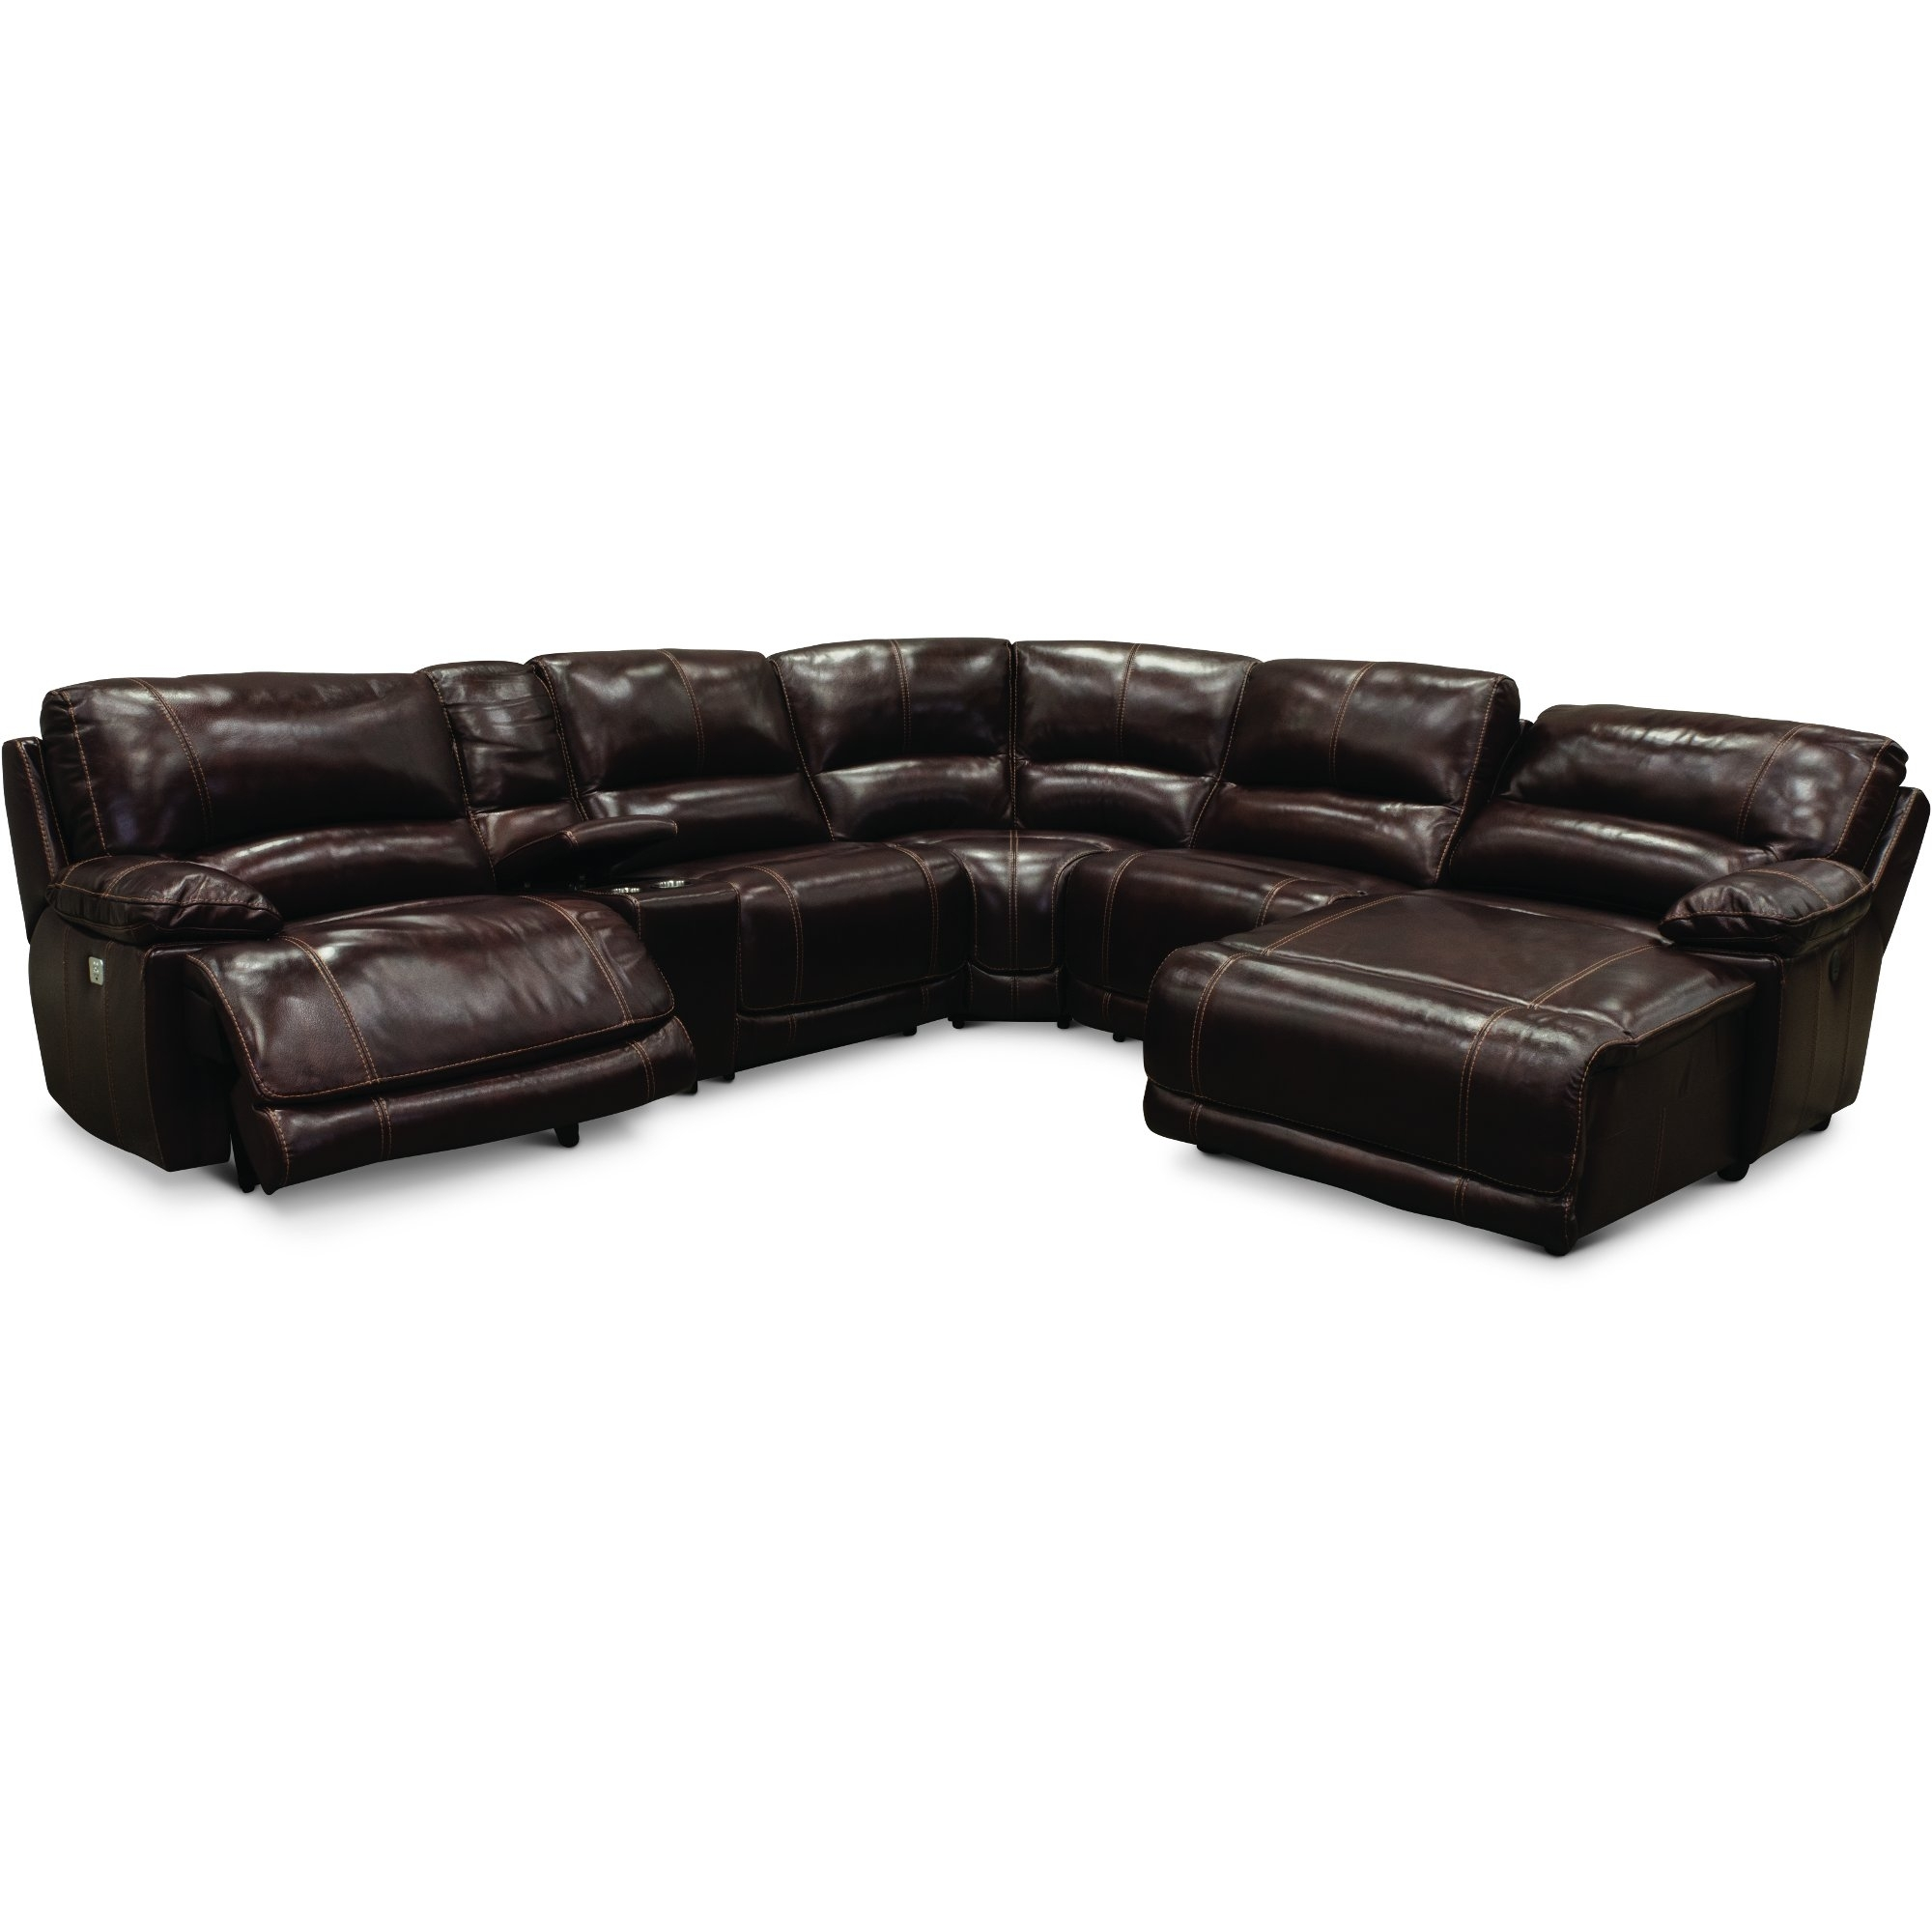 Burgundy 6 Piece Power Reclining Sectional Sofa - Brant | Rc Willey with regard to Jackson 6 Piece Power Reclining Sectionals (Image 7 of 30)